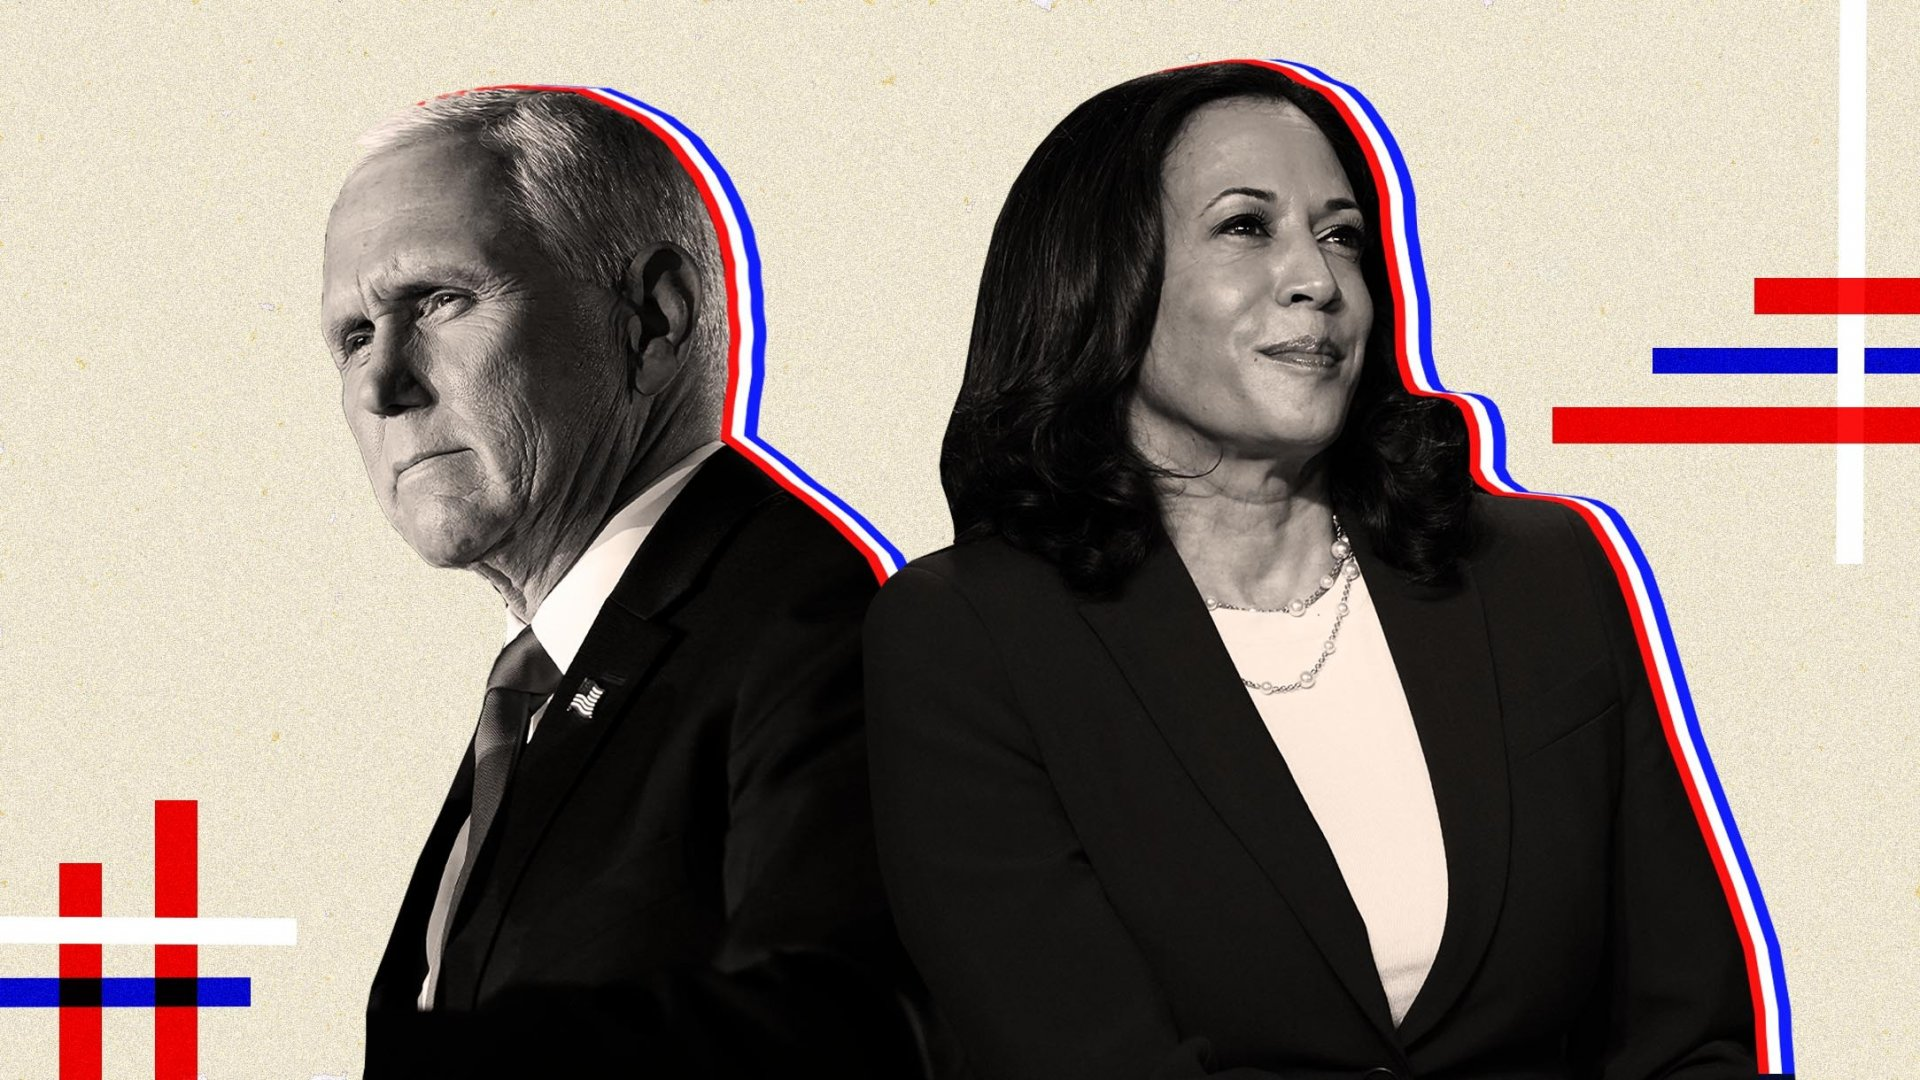 Pence v. Harris: A Rare Vice Presidential Debate That Matters